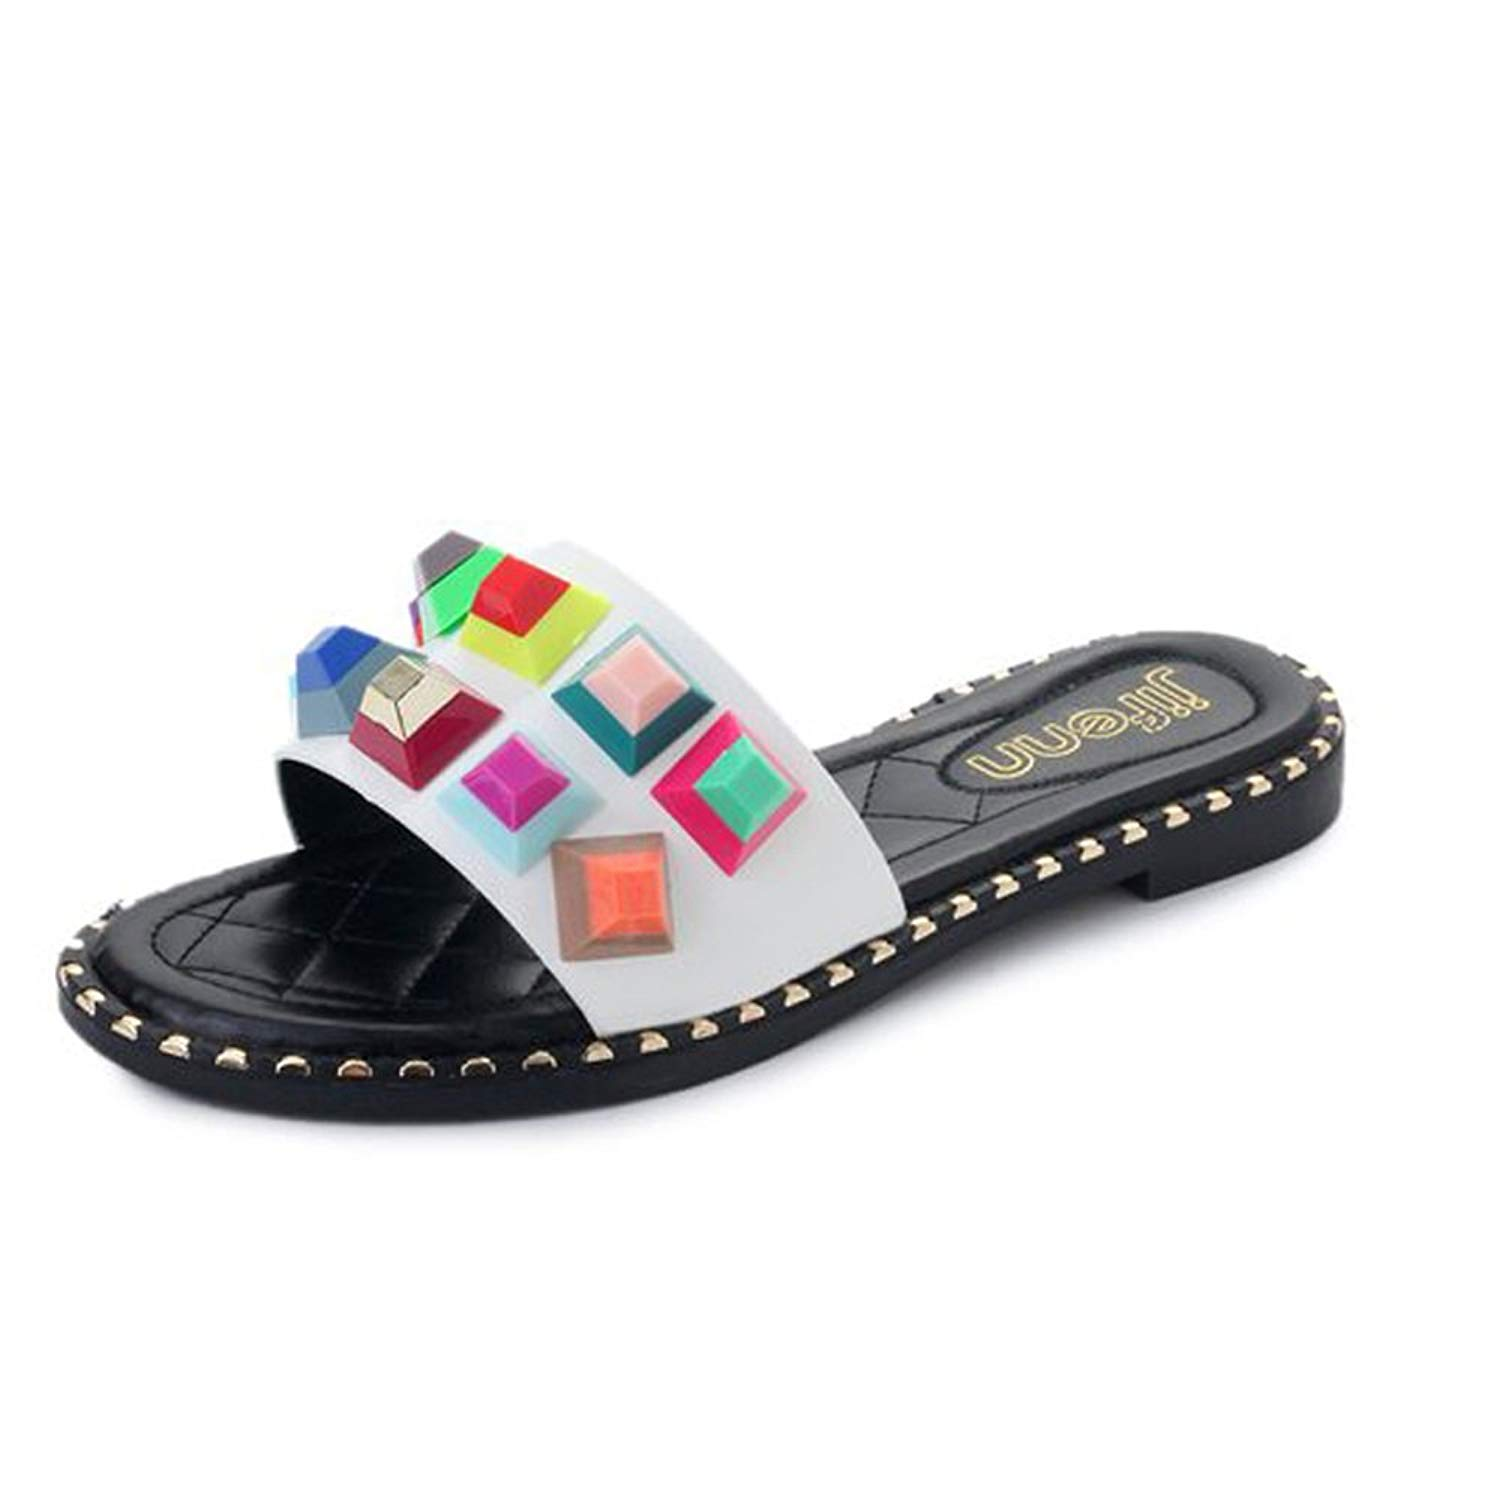 a52015b5ea09 Get Quotations · Mohsin Women Slide Sandals Colorful Stud Beach Slide  Sandals Leather Slide Sandals